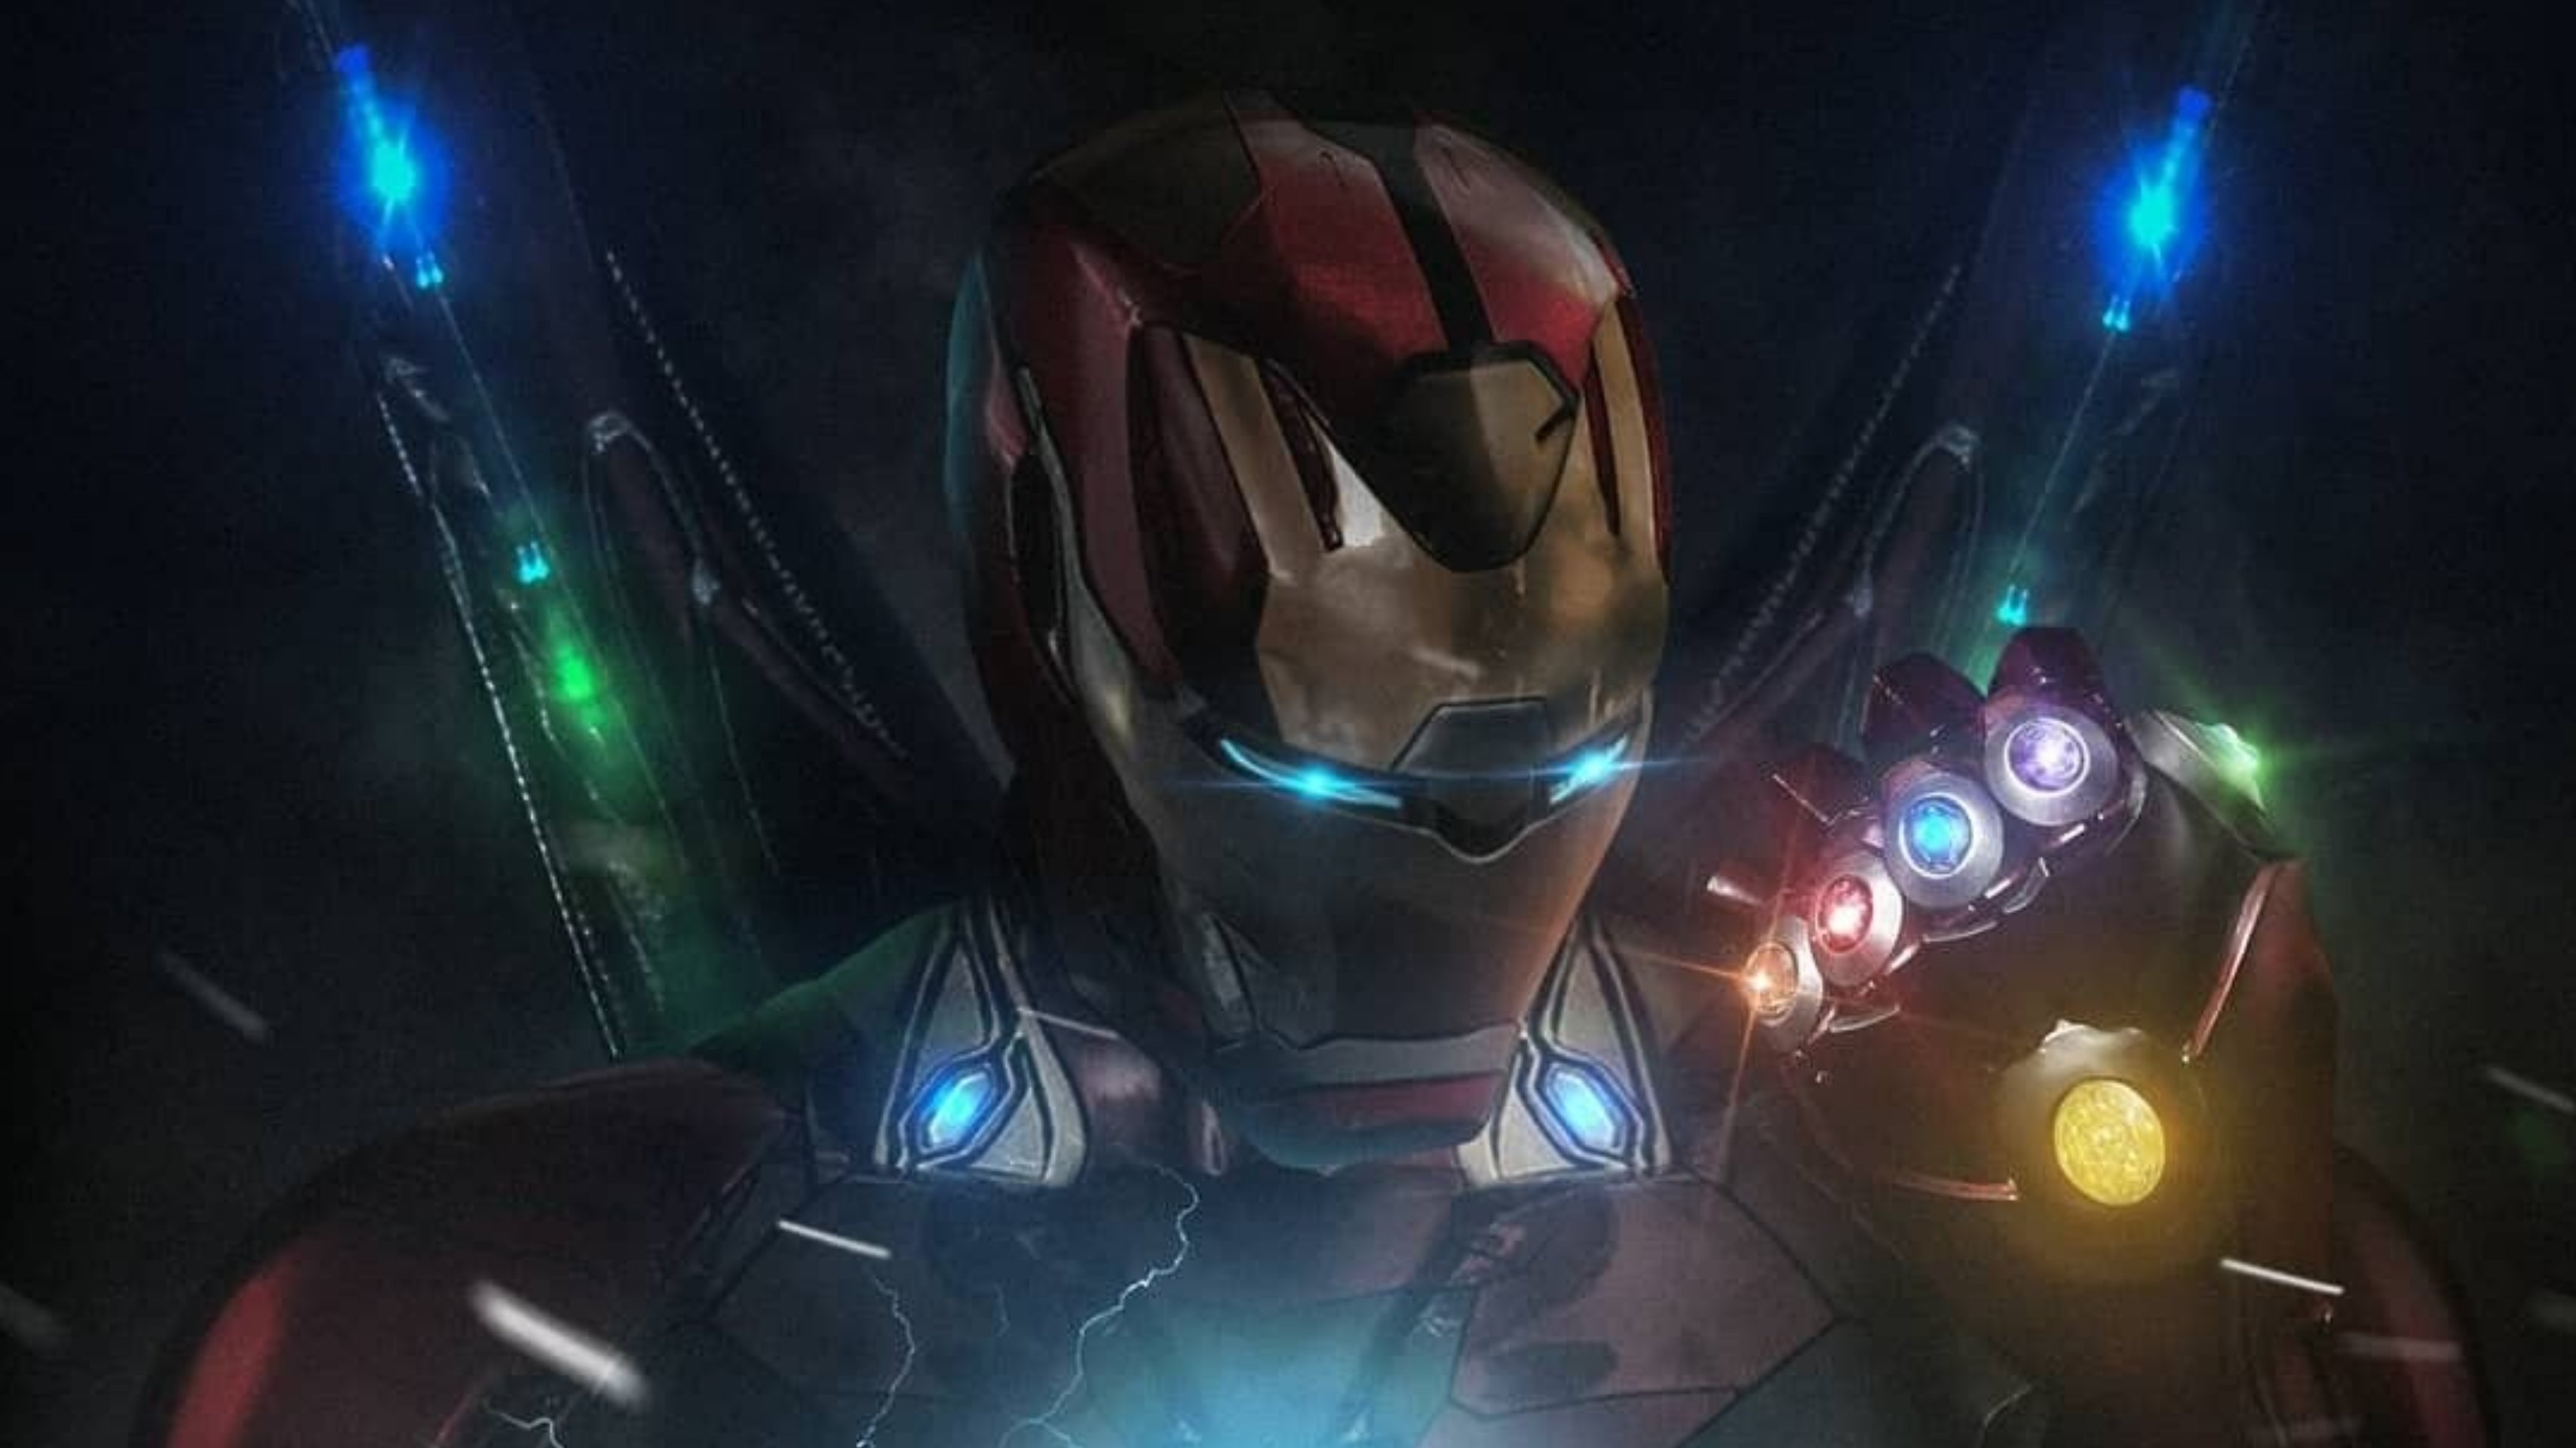 download hd wallpapers of iron man